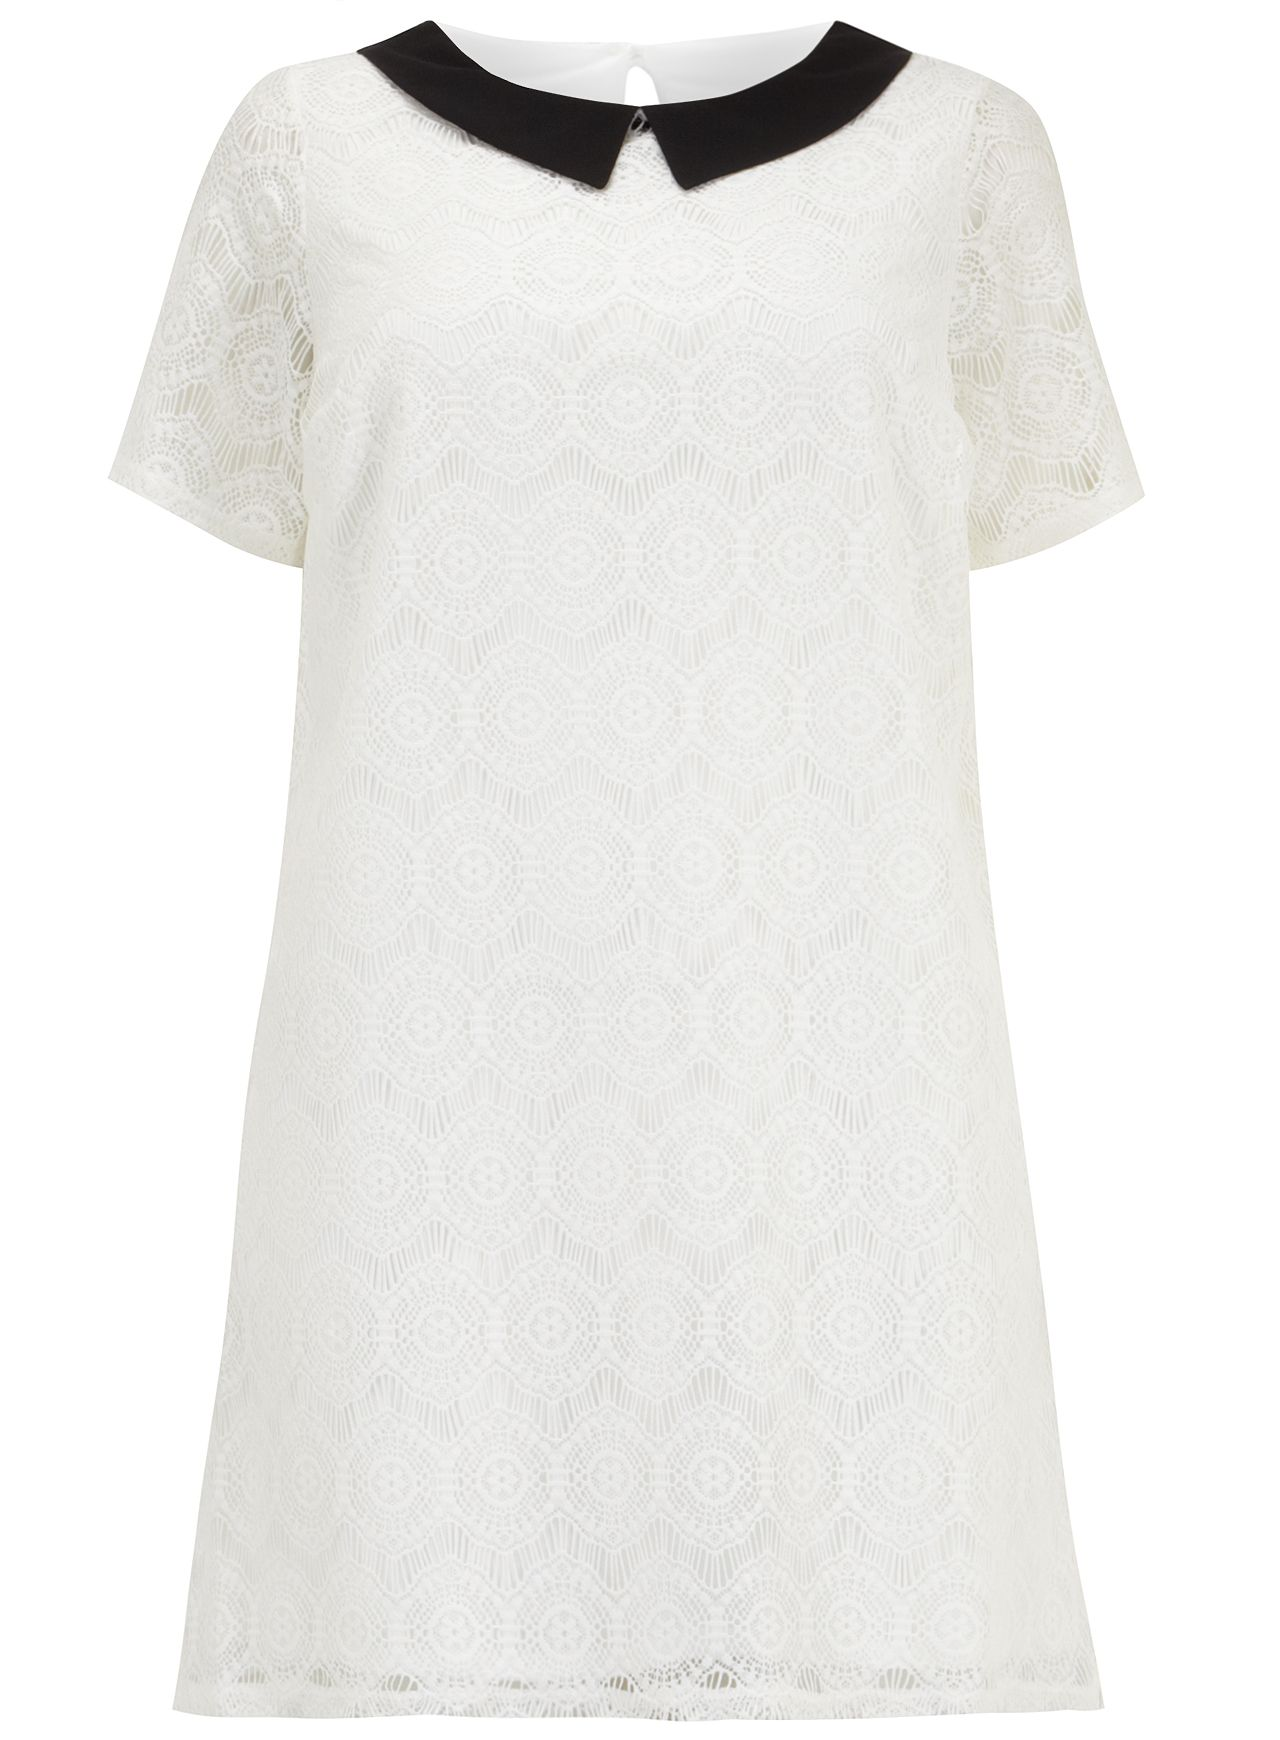 Rounded collar lace tunic